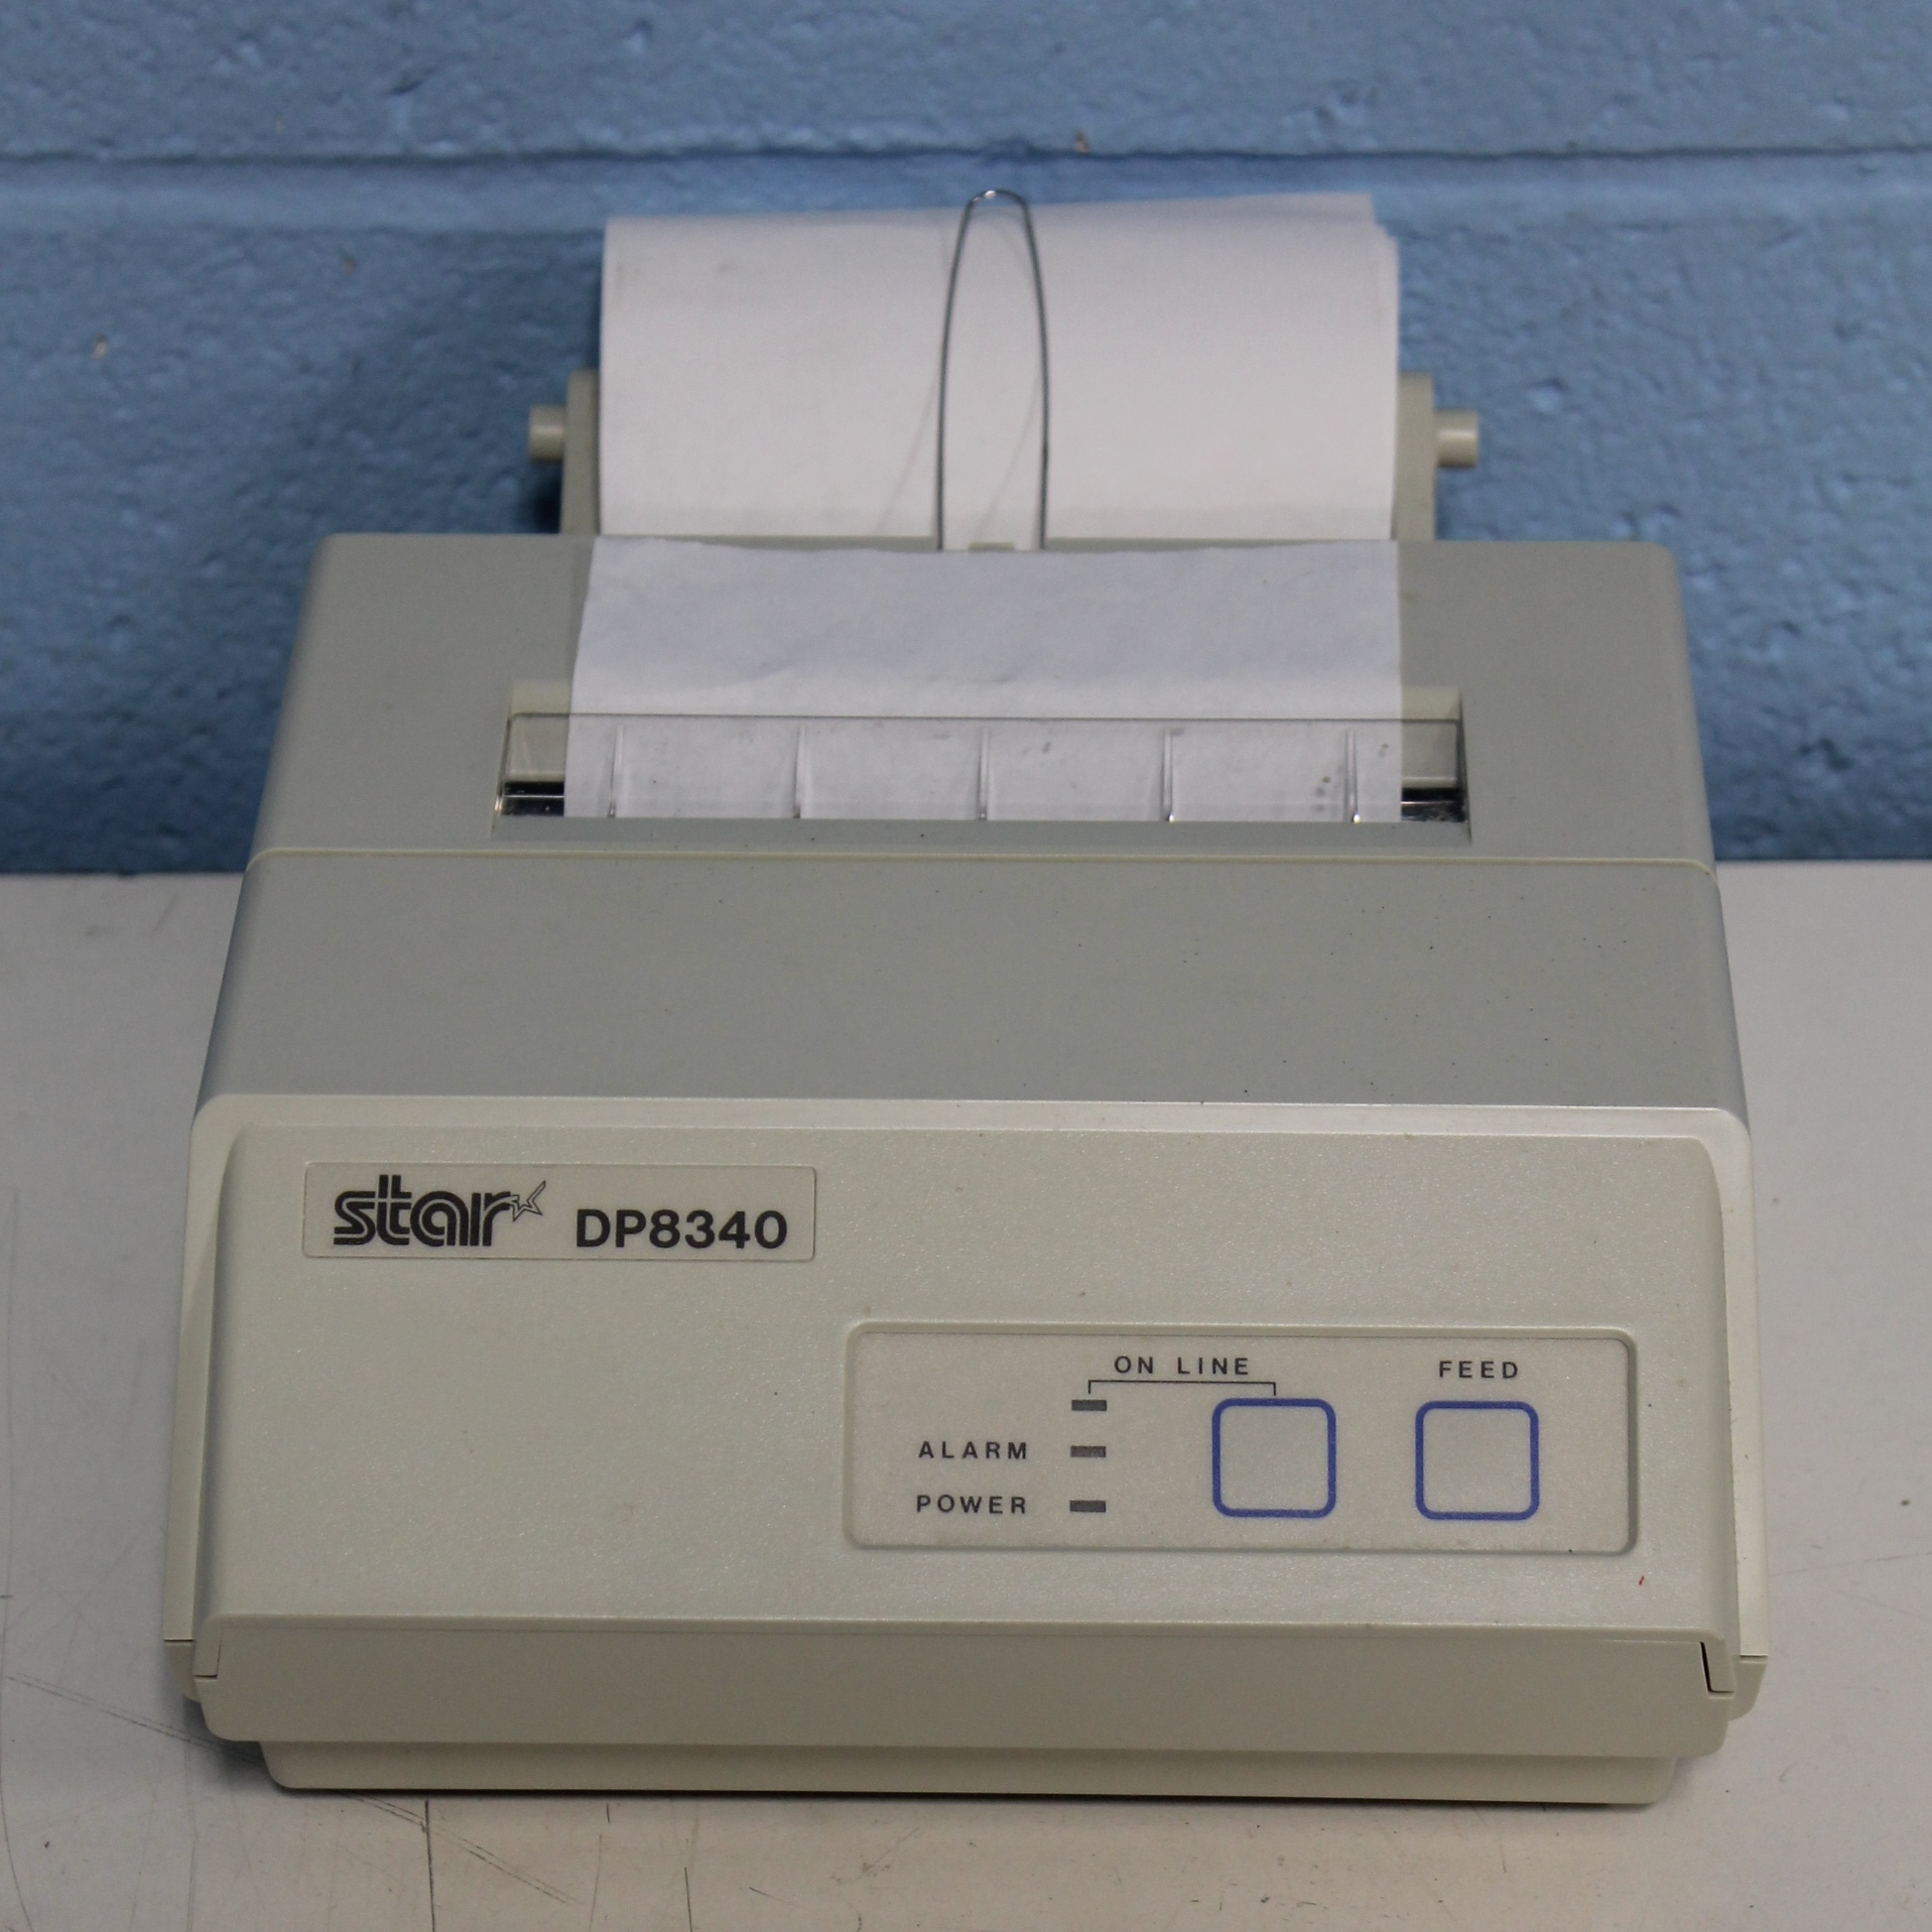 DP8340 Dot Matrix Printer Name